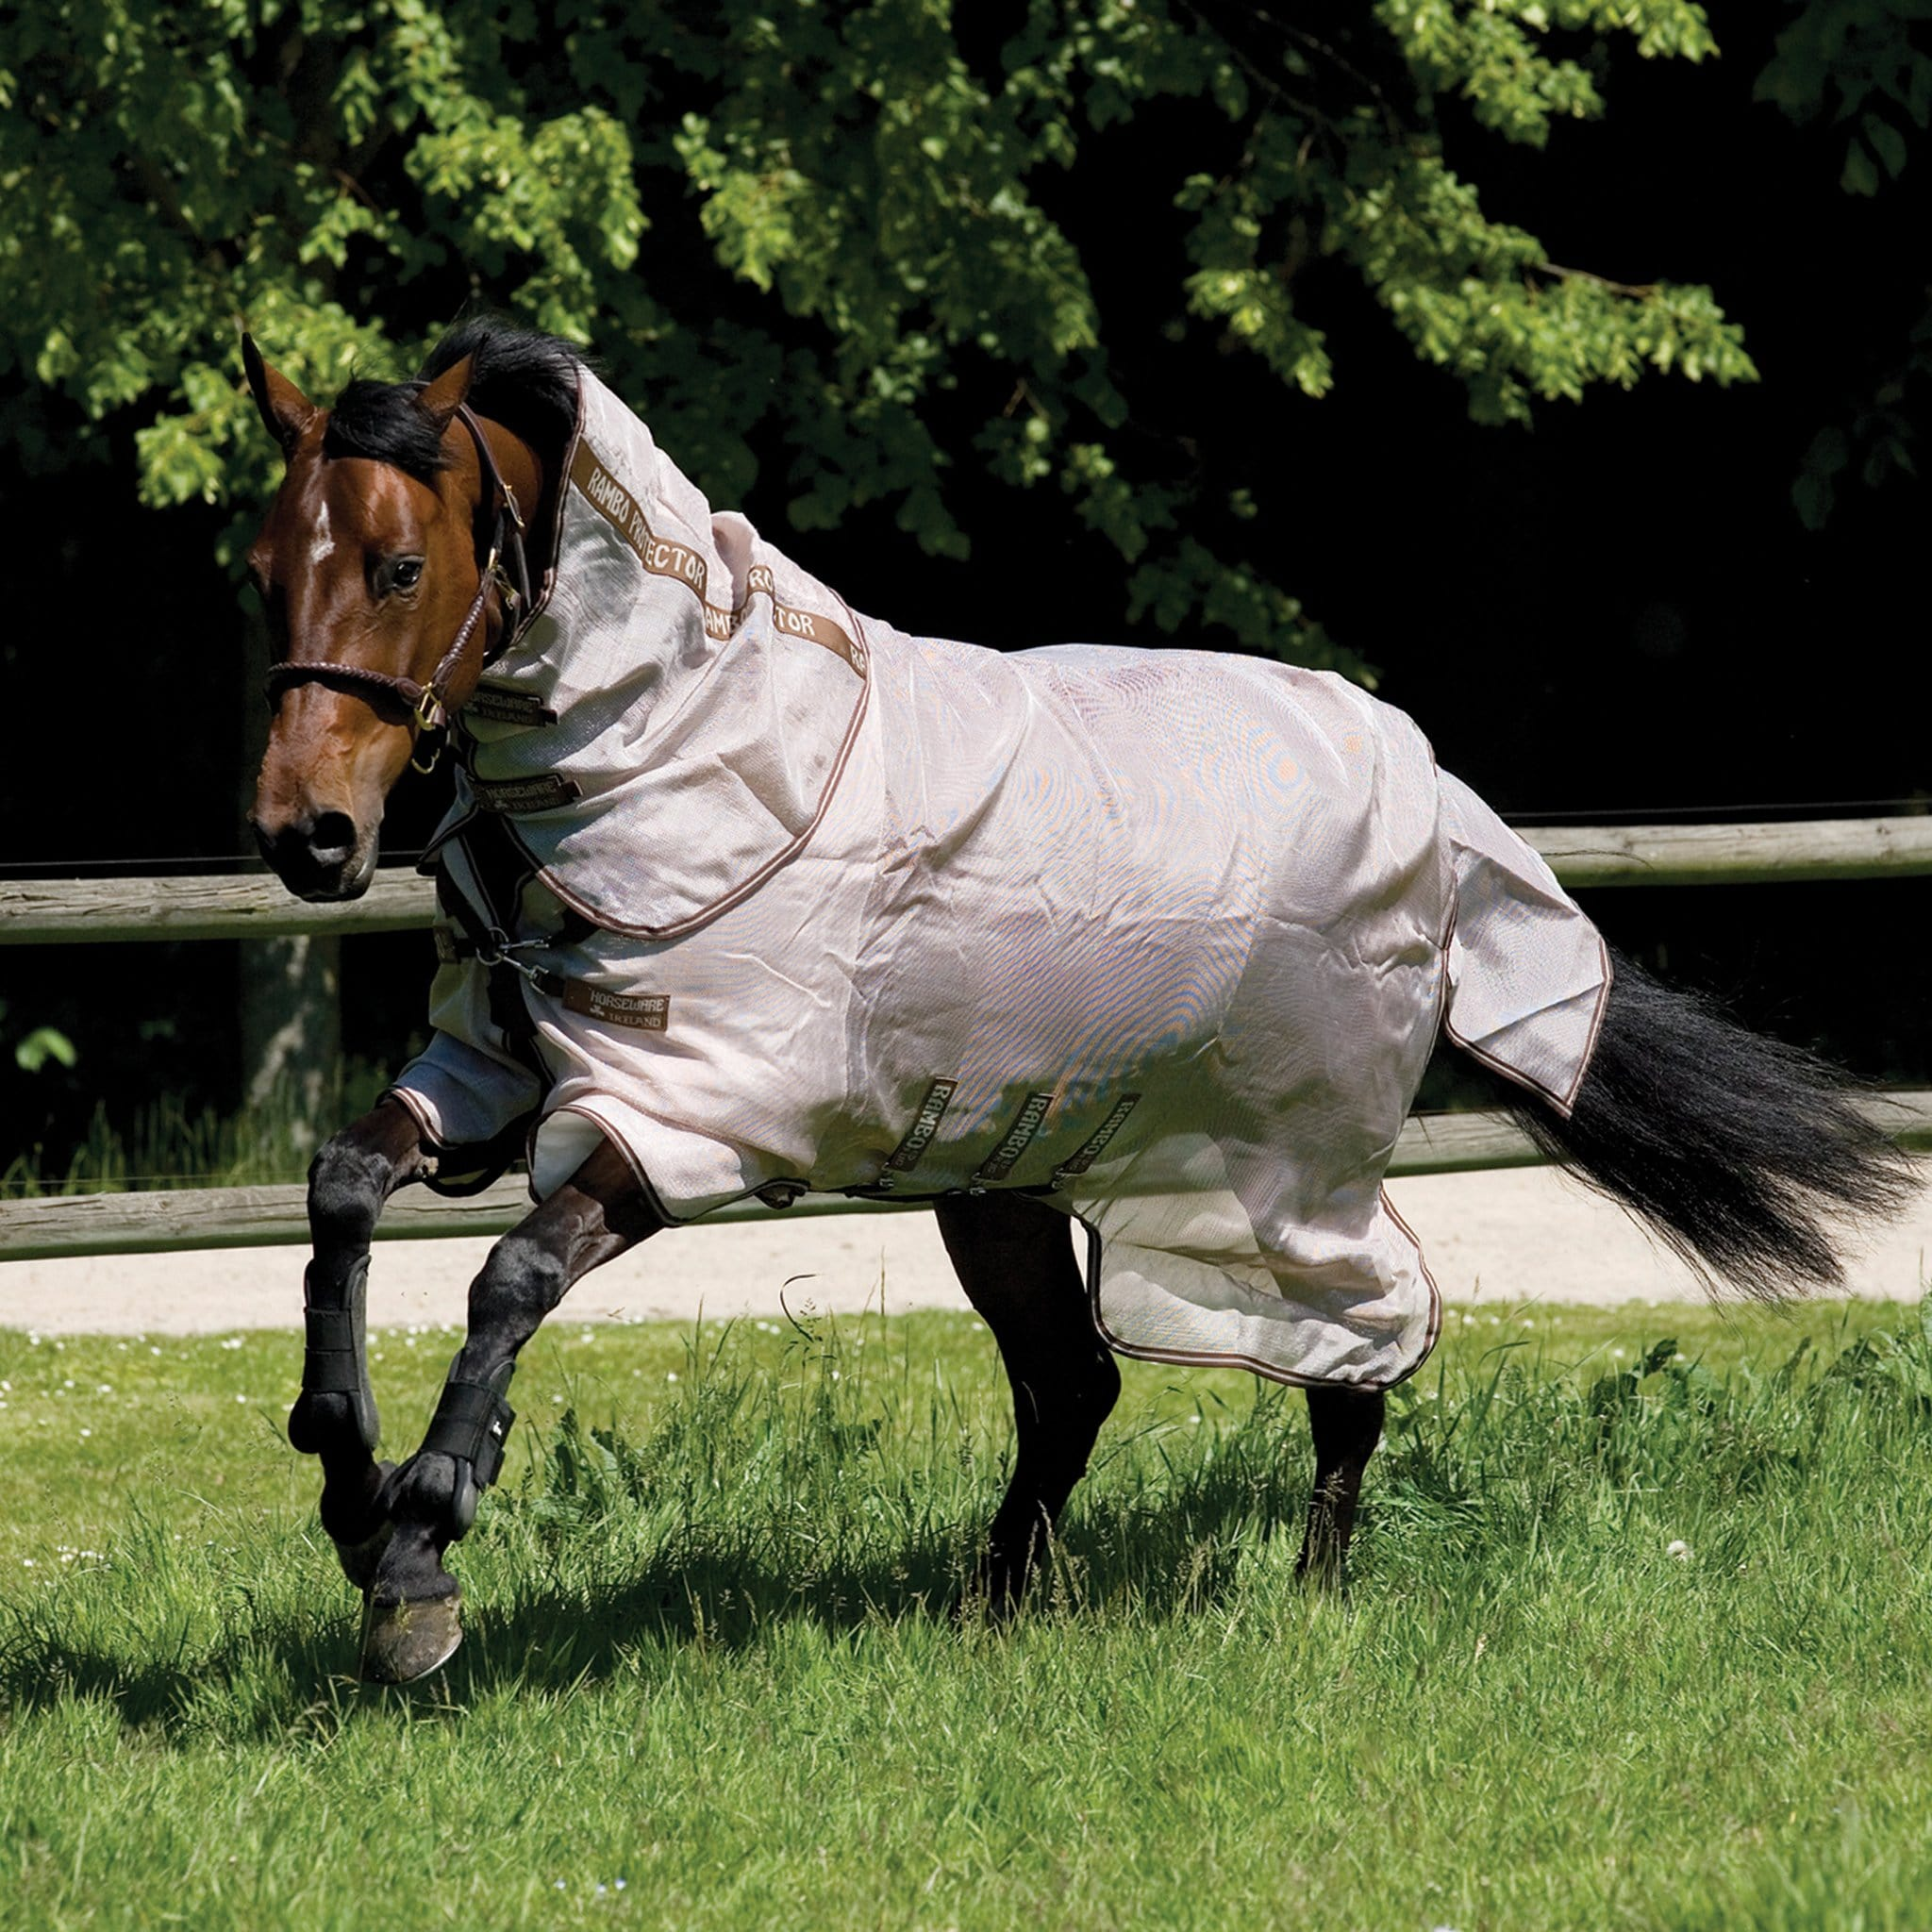 Rambo Protector Fly Rug With Detachable Neck Cover AFAR70 Bay Horse Cantering